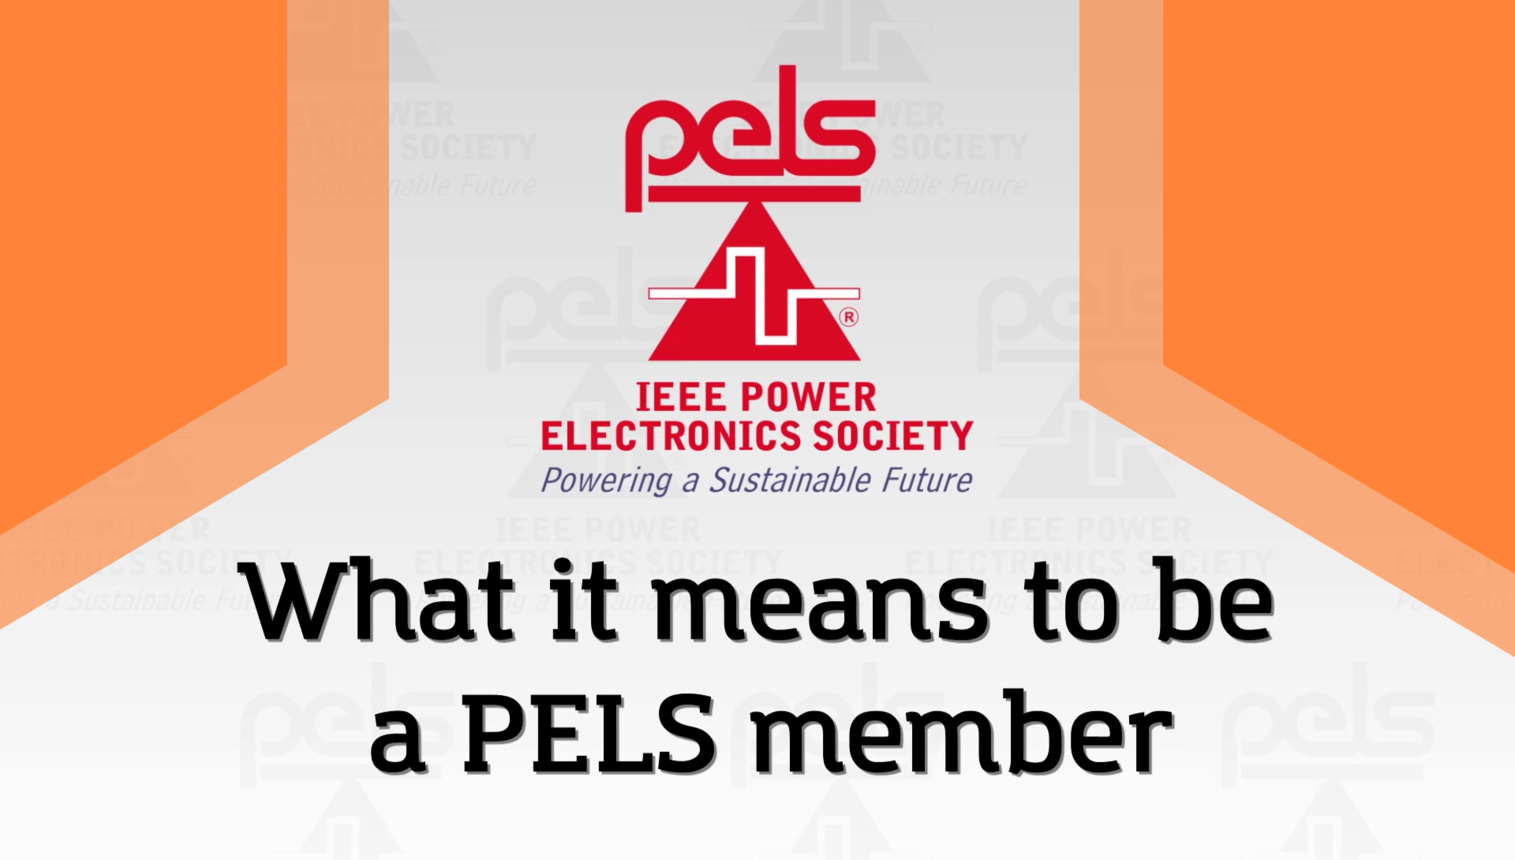 PELS Membership: A Powerful Advantage